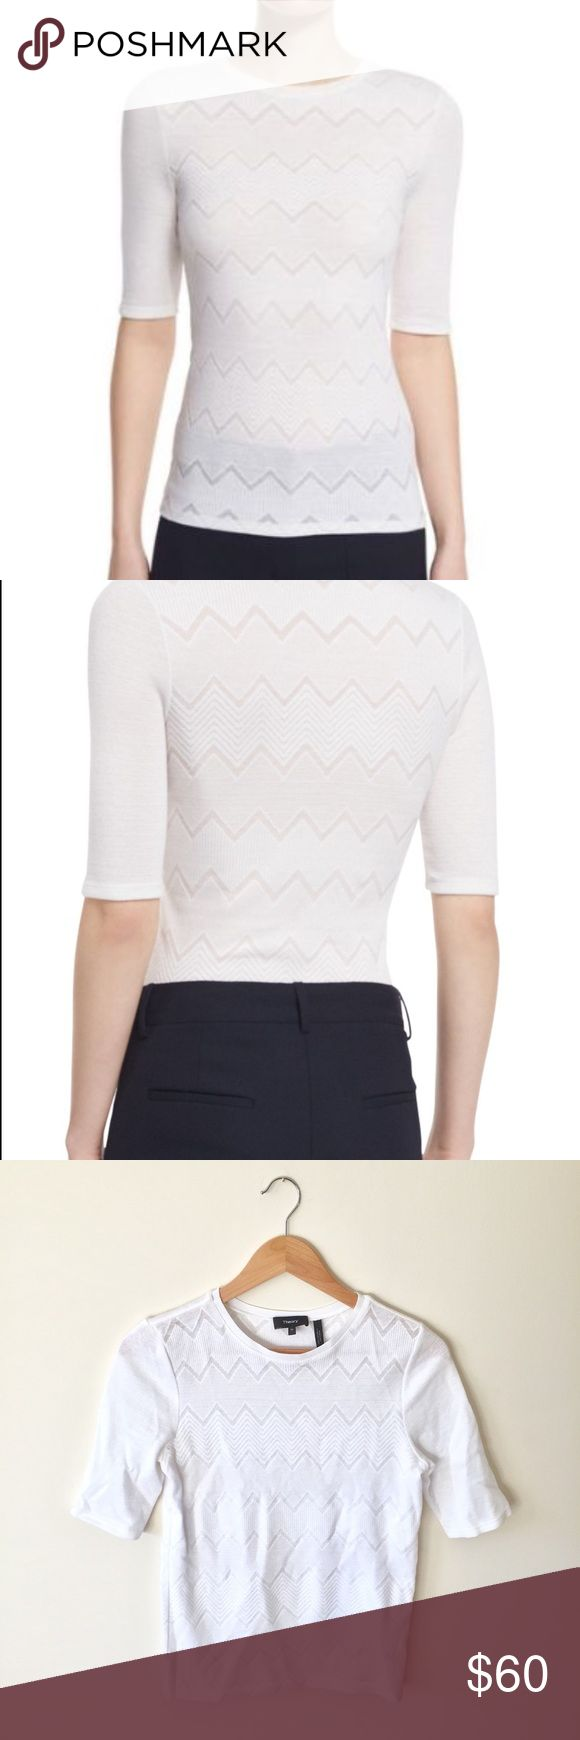 Theory | White Santea C Terrace Chevron Top | M Theory | White Santea C Terrace Chevron Top | Size M  -Size: M -Condition: Excellent used condition! -Color: white -Style: chevron print short sleeve knit -Measurements: 23 inches in length, 12.5 inch sleeve  -Material: cotton/nylon/spandex (dry clean) -Closure: pullover -Pair with: your favorite wife leg trousers and pumps for work! Theory Tops Tees - Short Sleeve